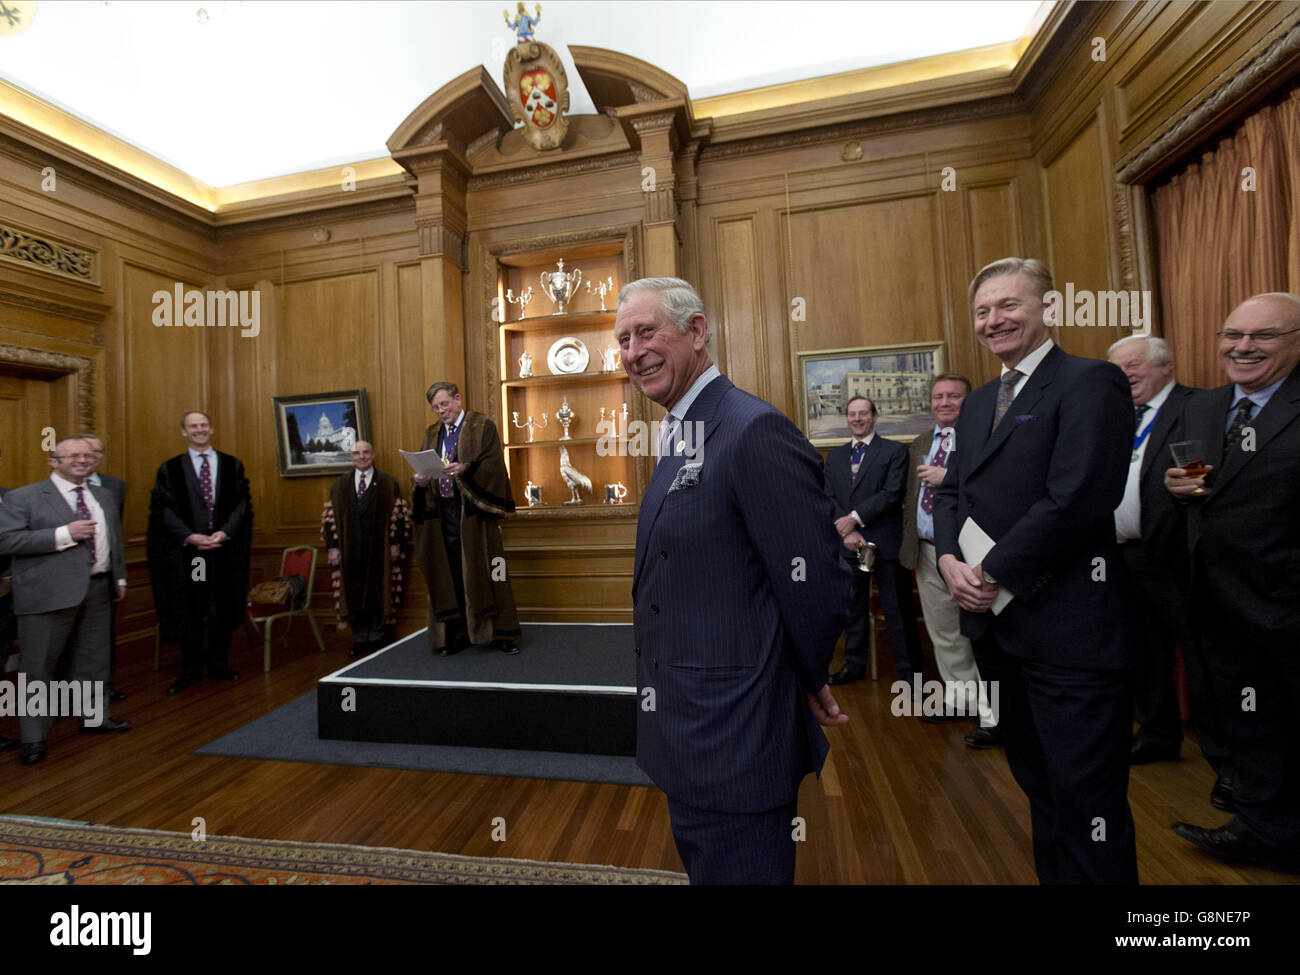 Prince Charles Worshipful Company of Brewers Stock Photo